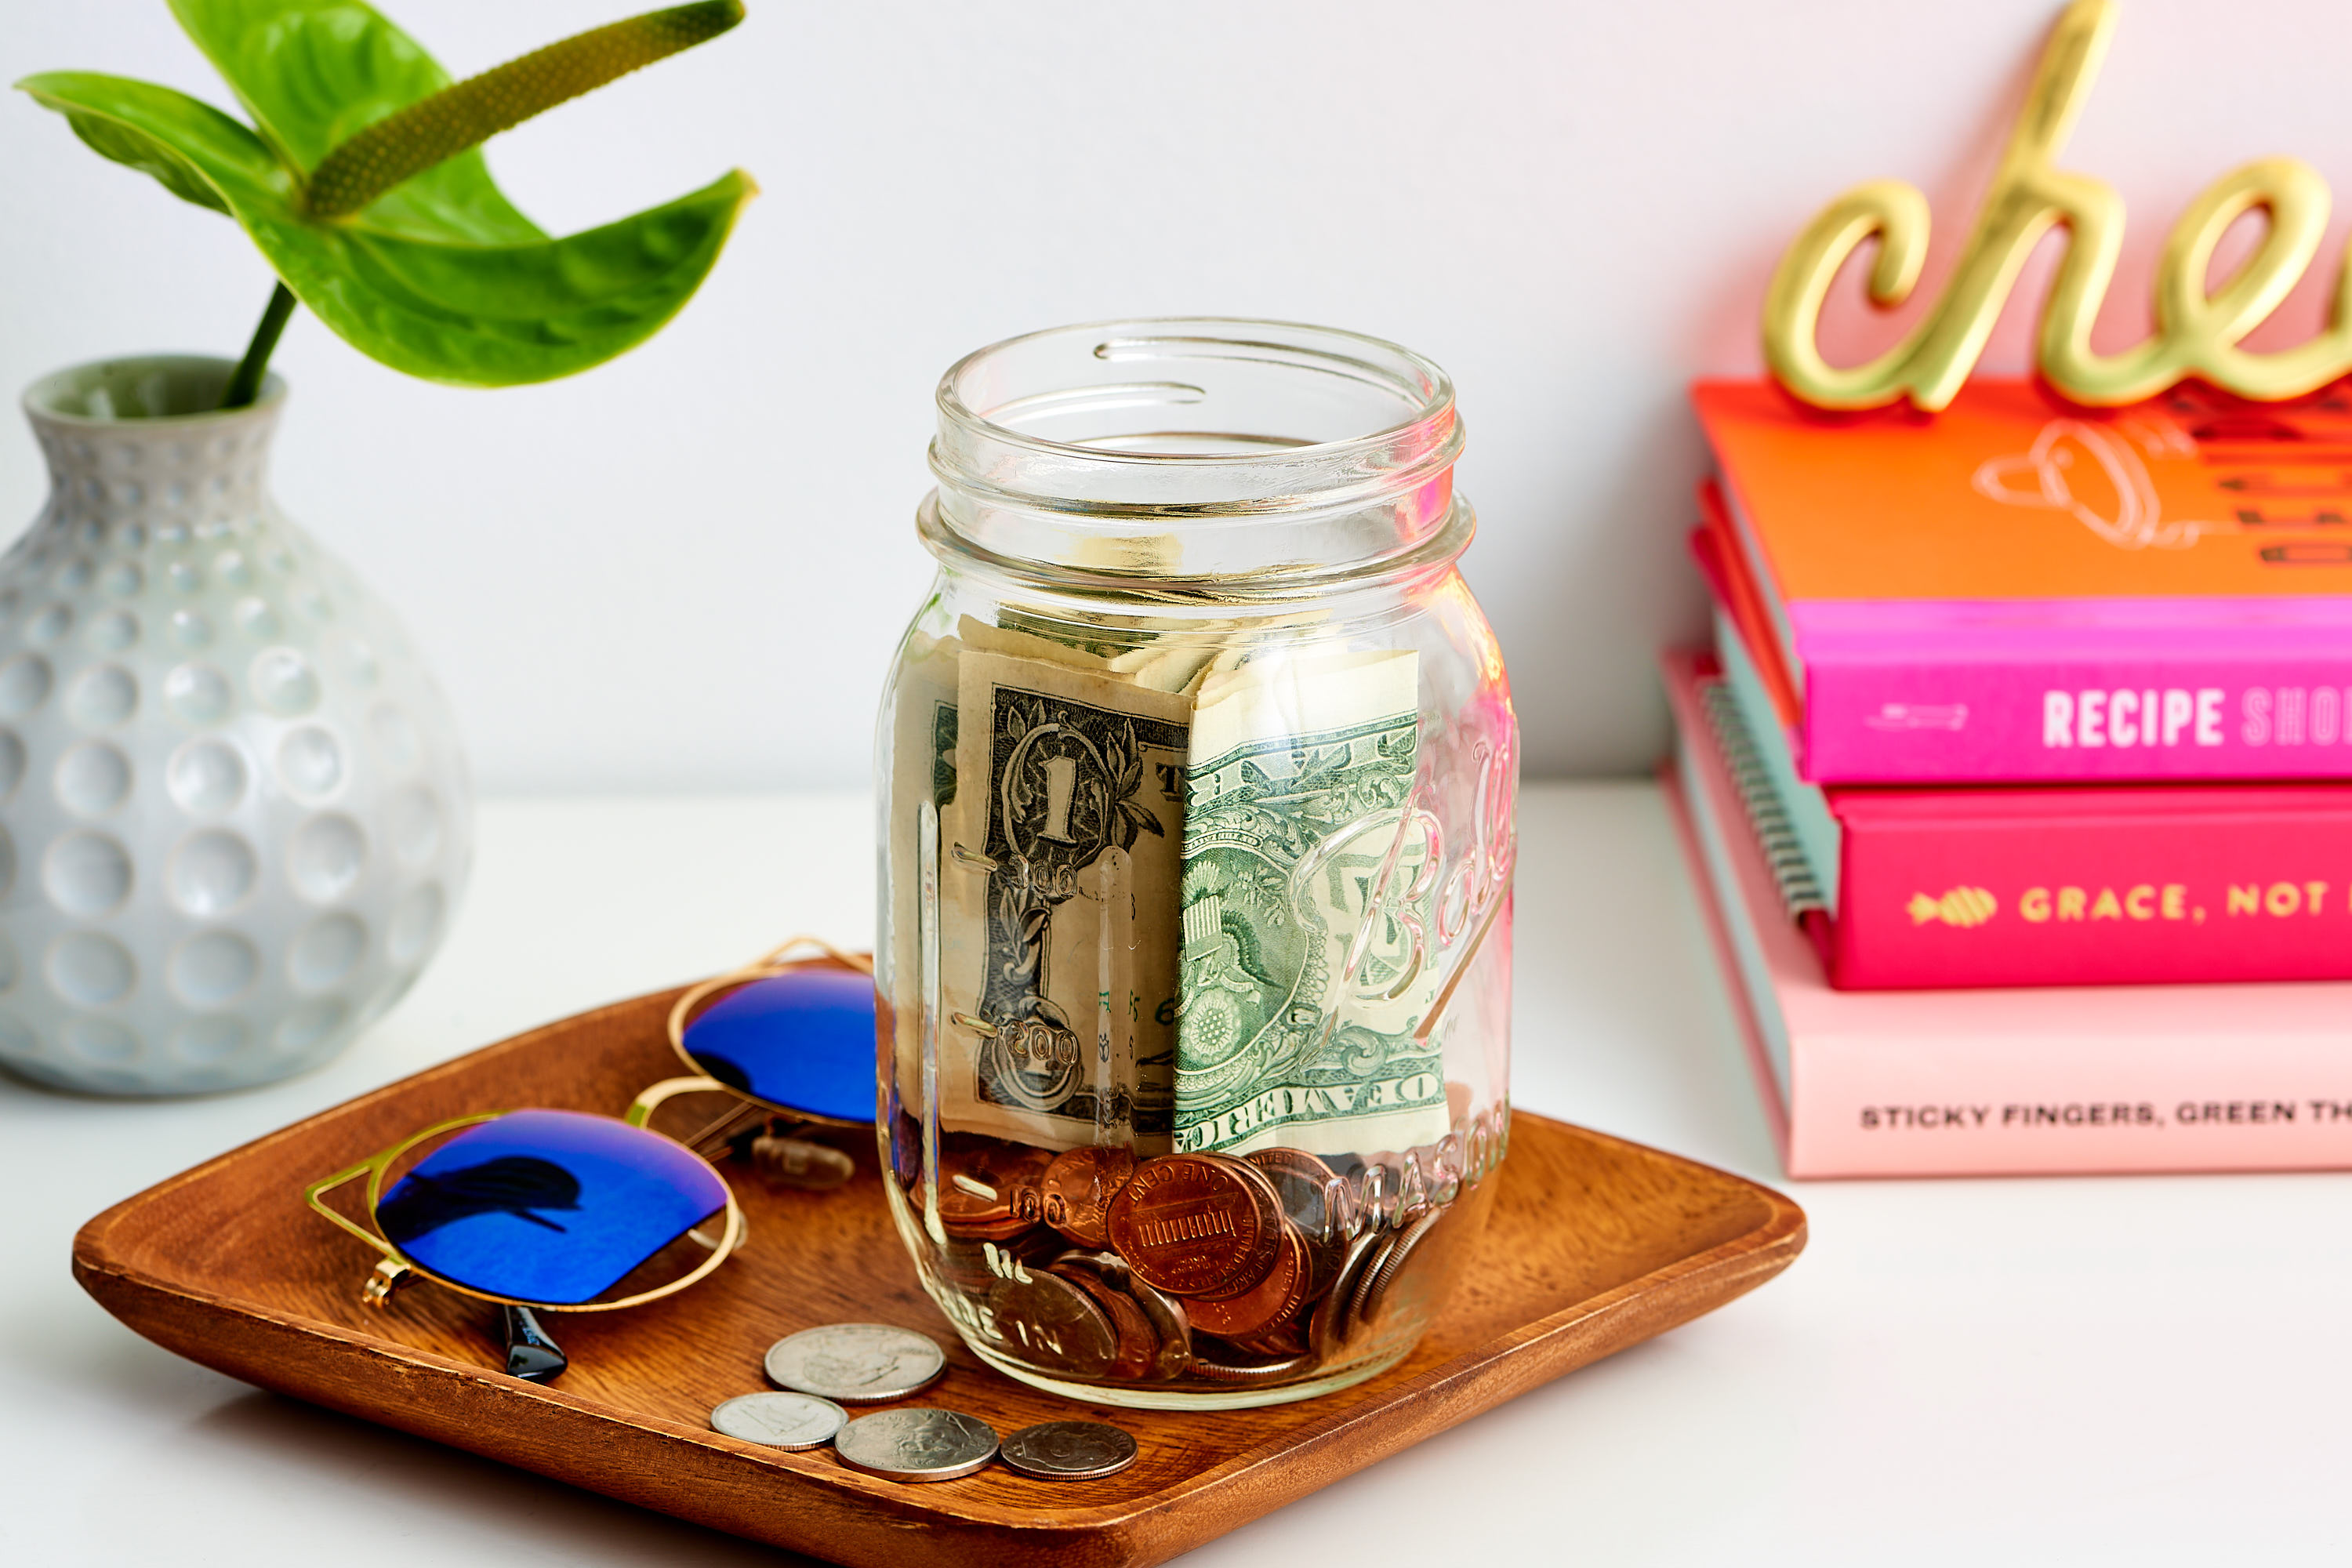 Experts Say These 4 Financial Tips Are Totally Outdated